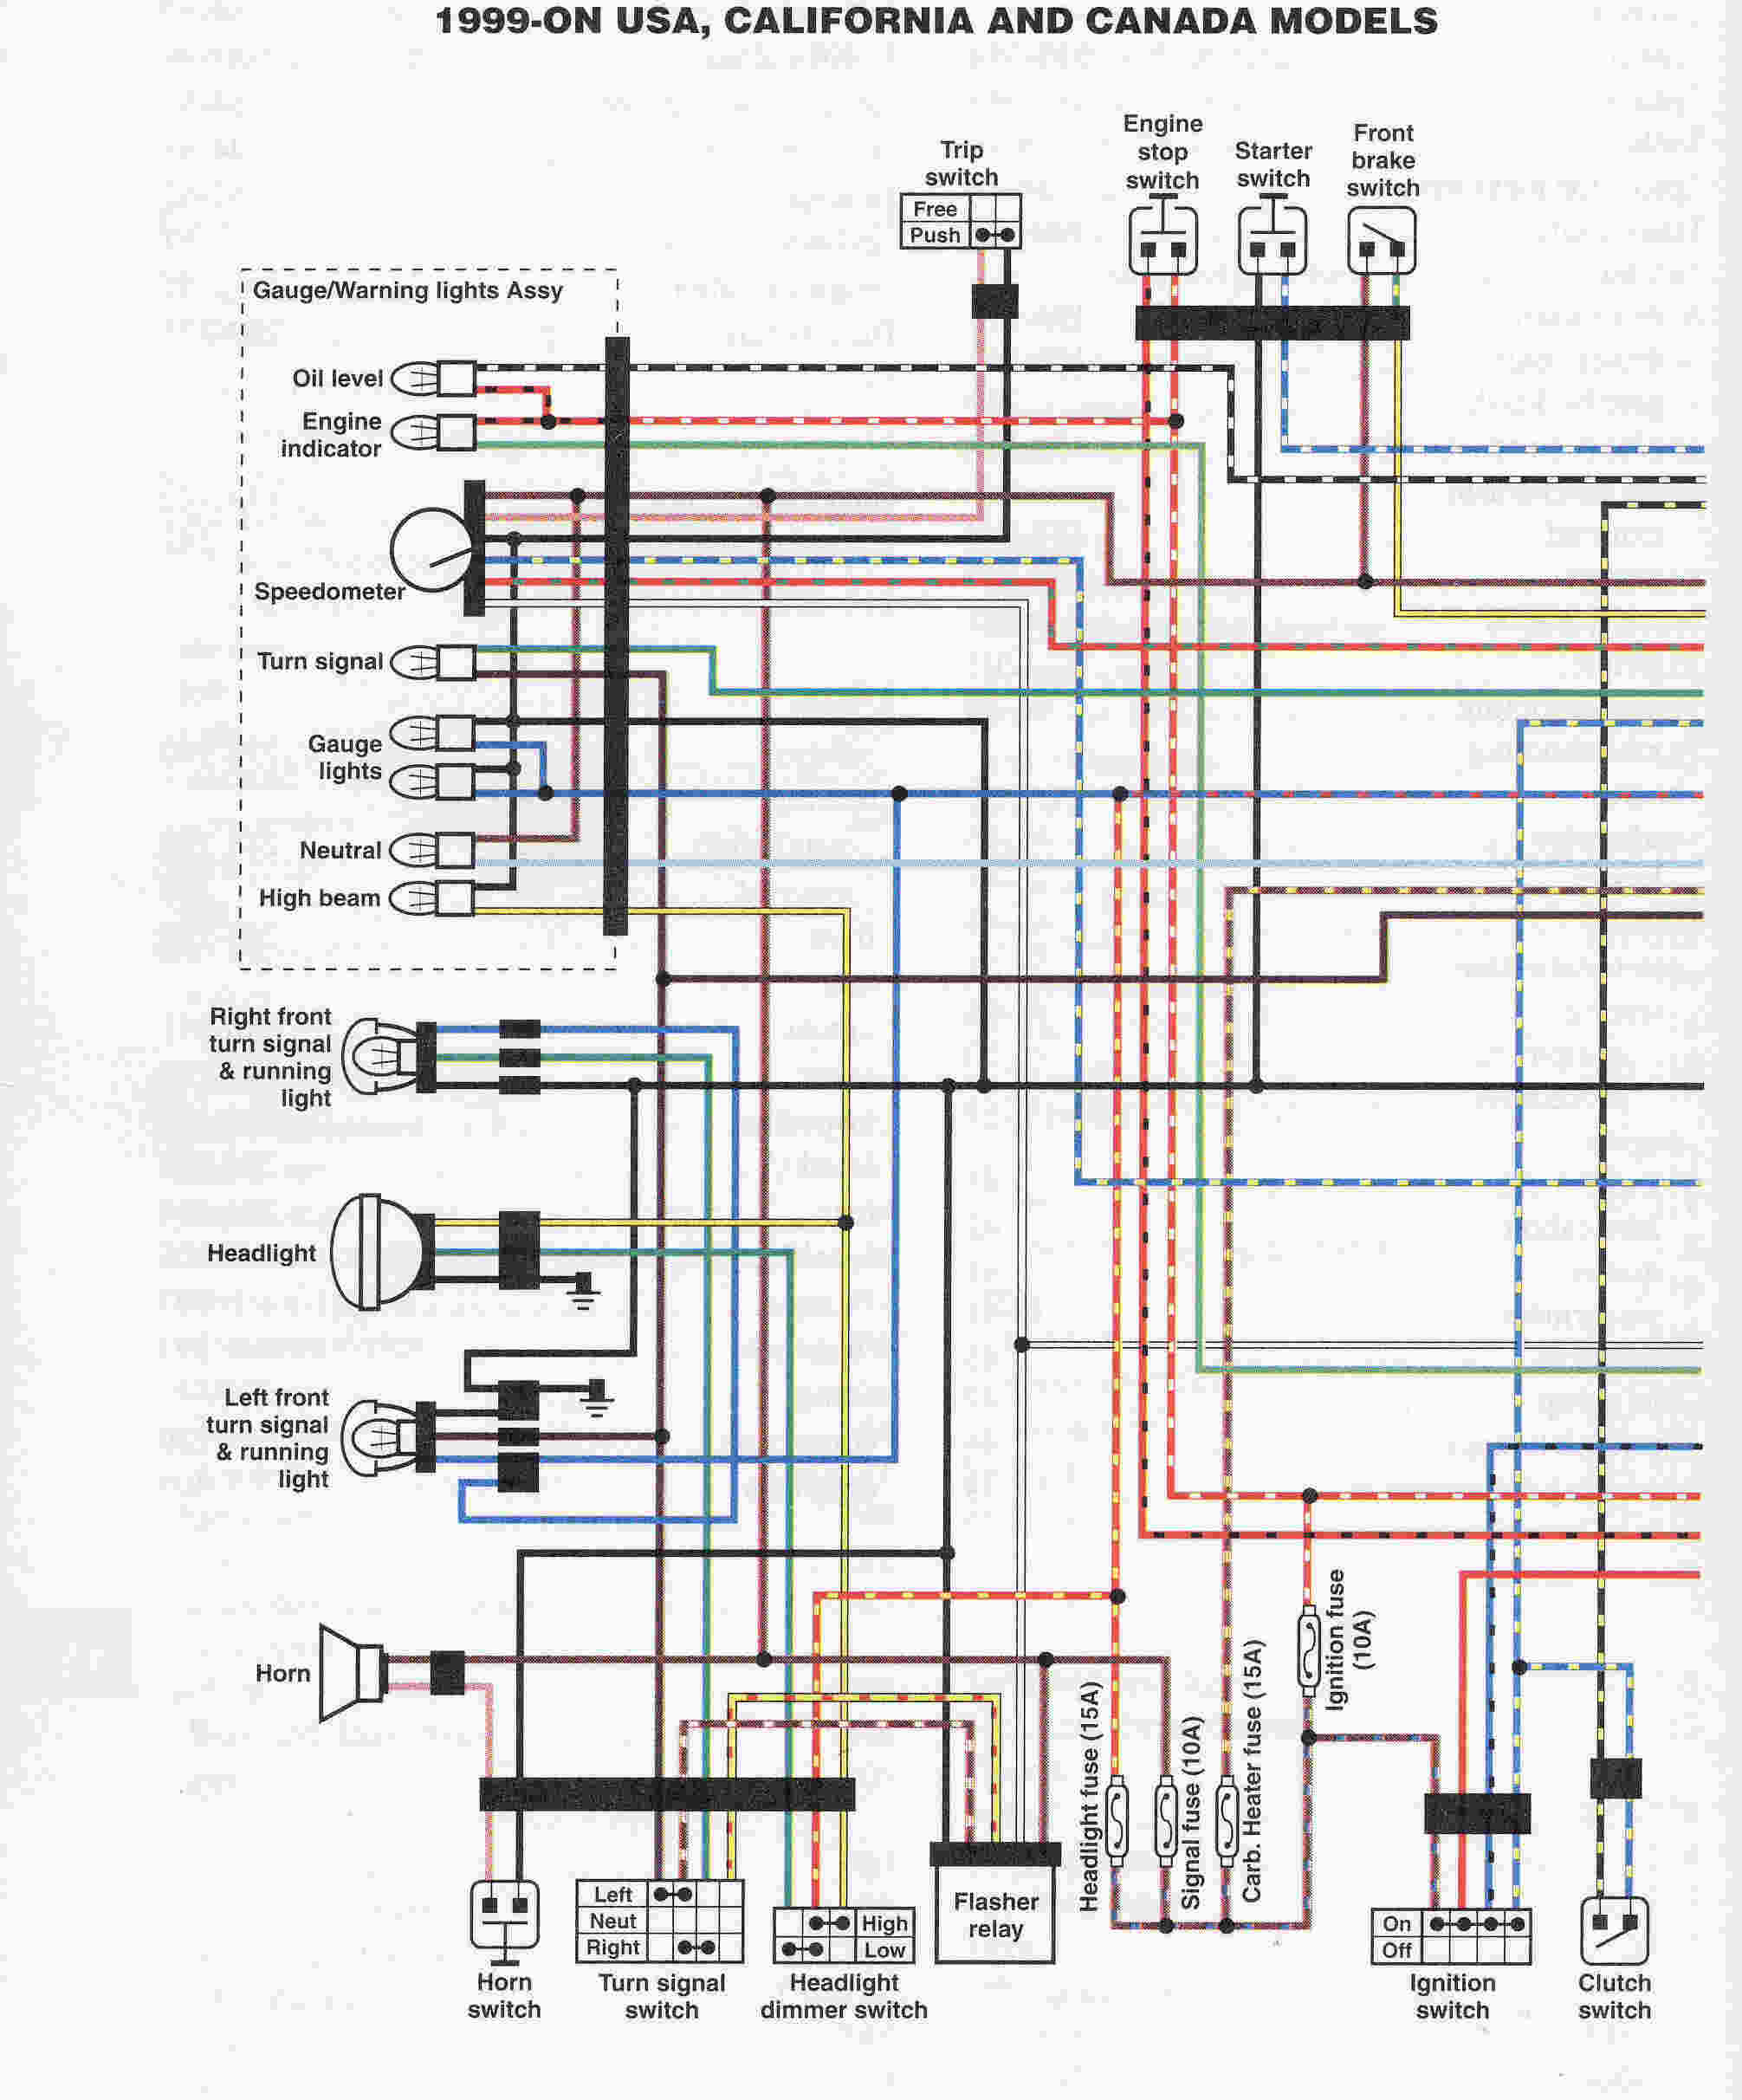 V Star 250 Headlight Wiring Diagram from www.sloneservices.com